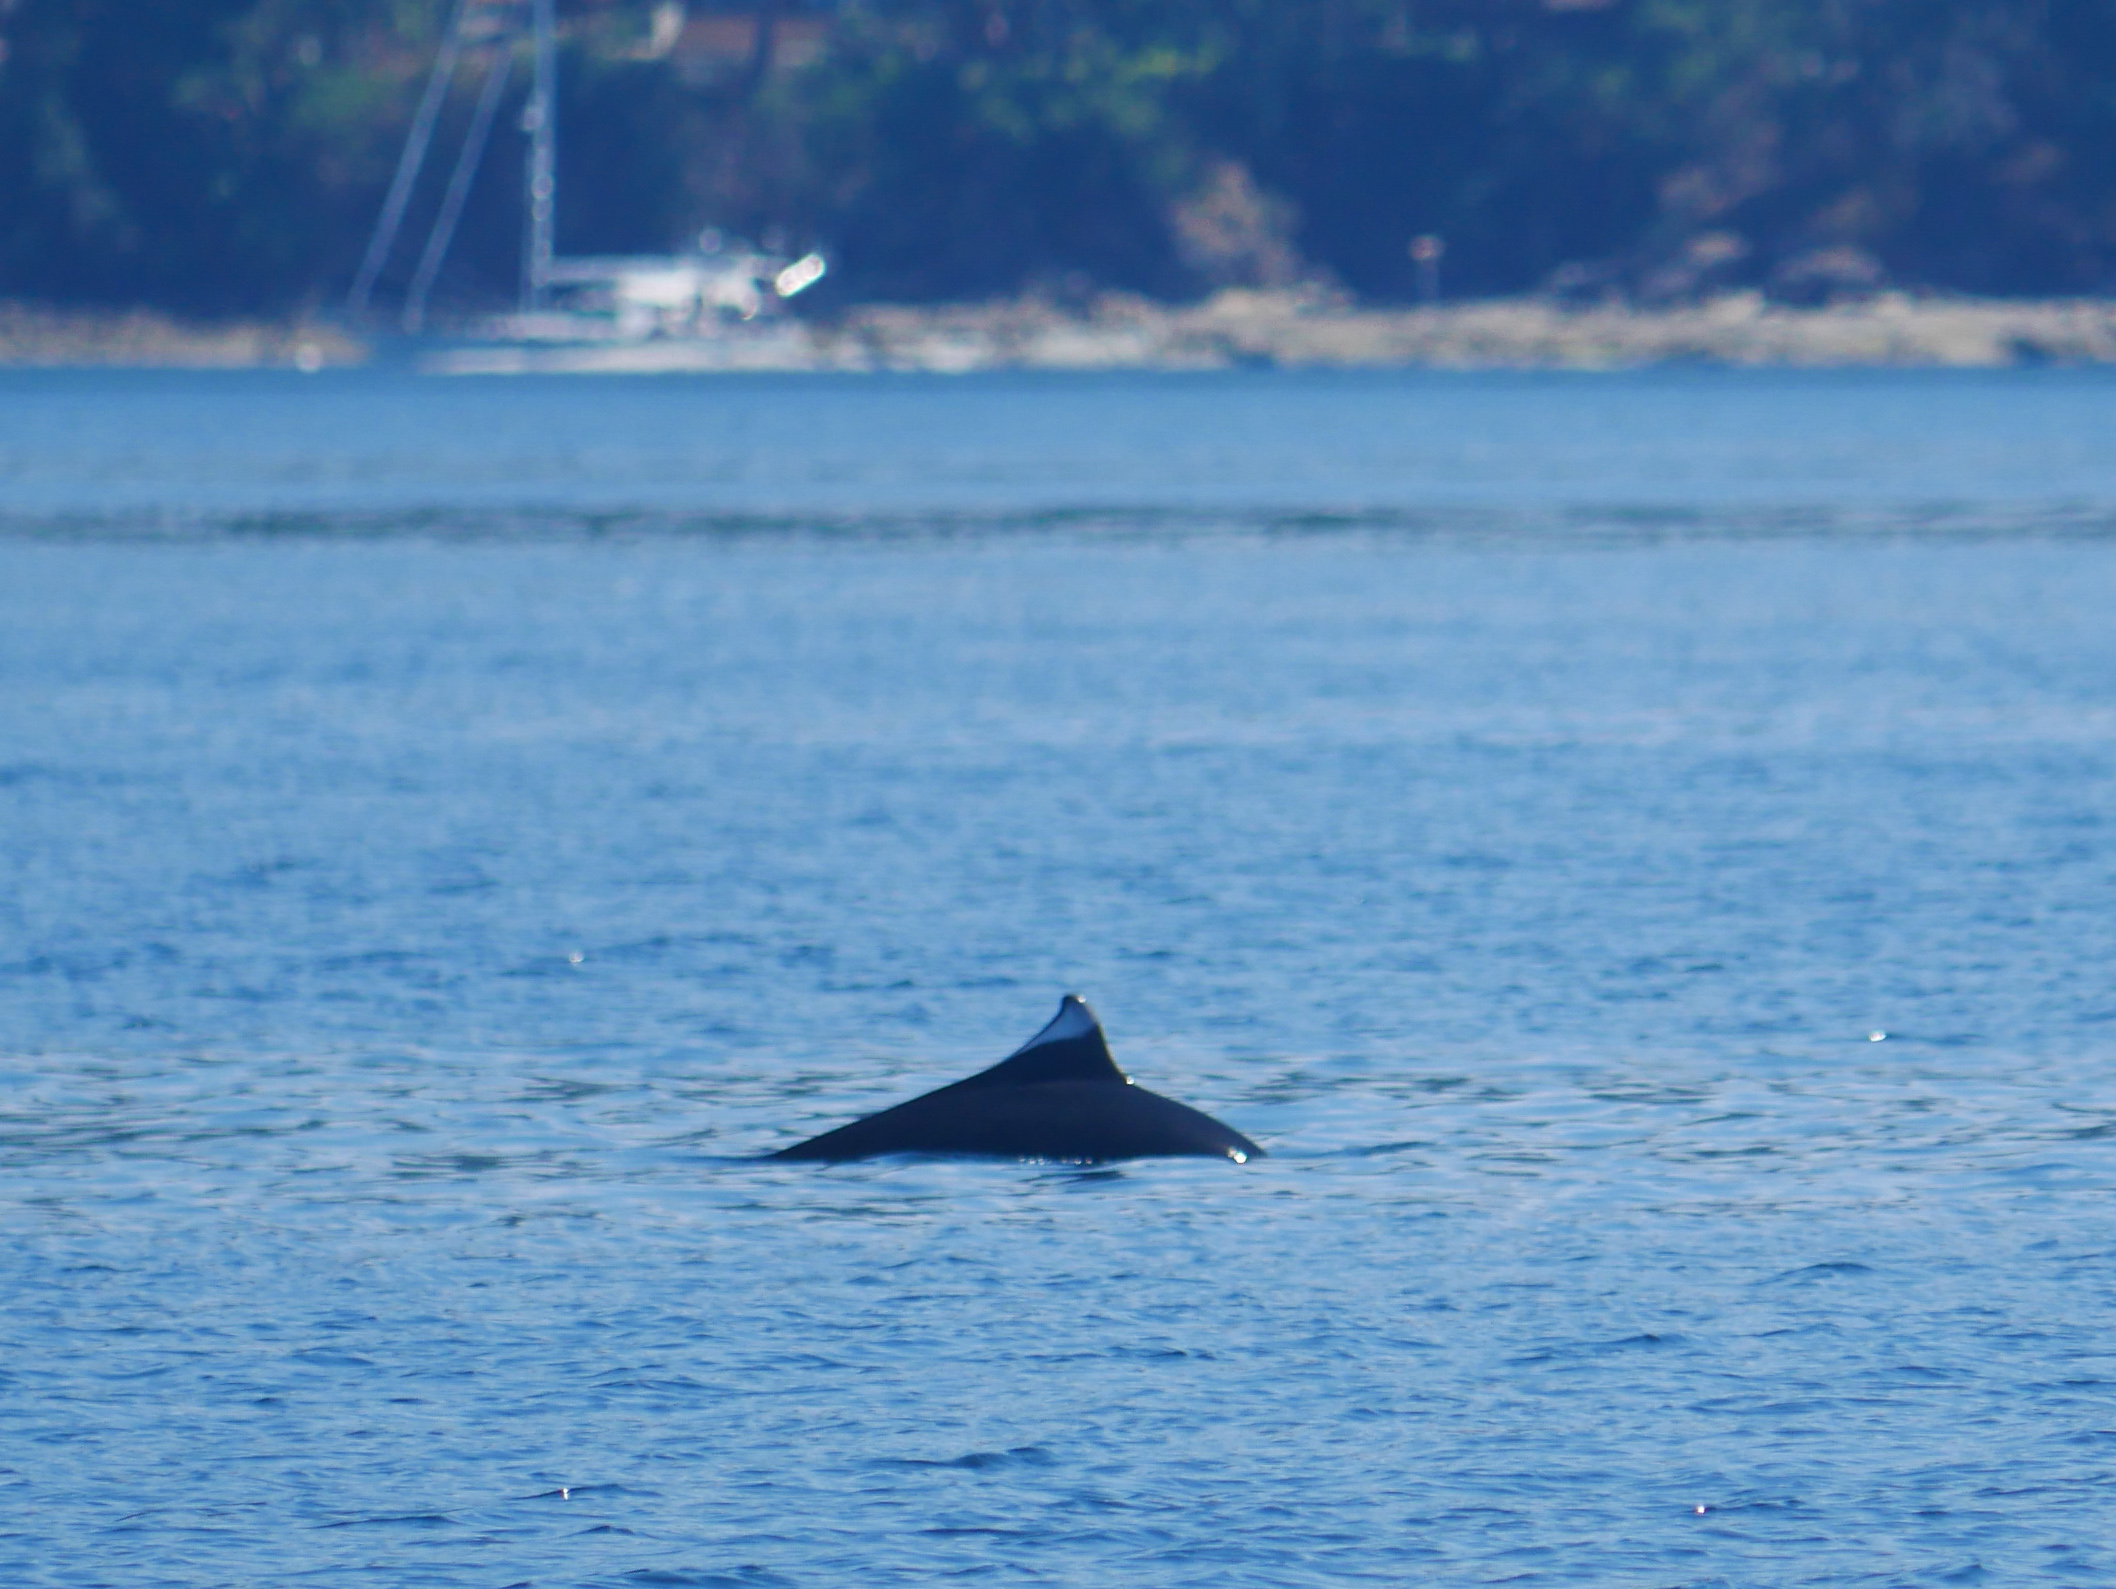 Dall's porpoise surfacing, check out the colouration on the dorsal fin! Photo by Rodrigo Menezes.